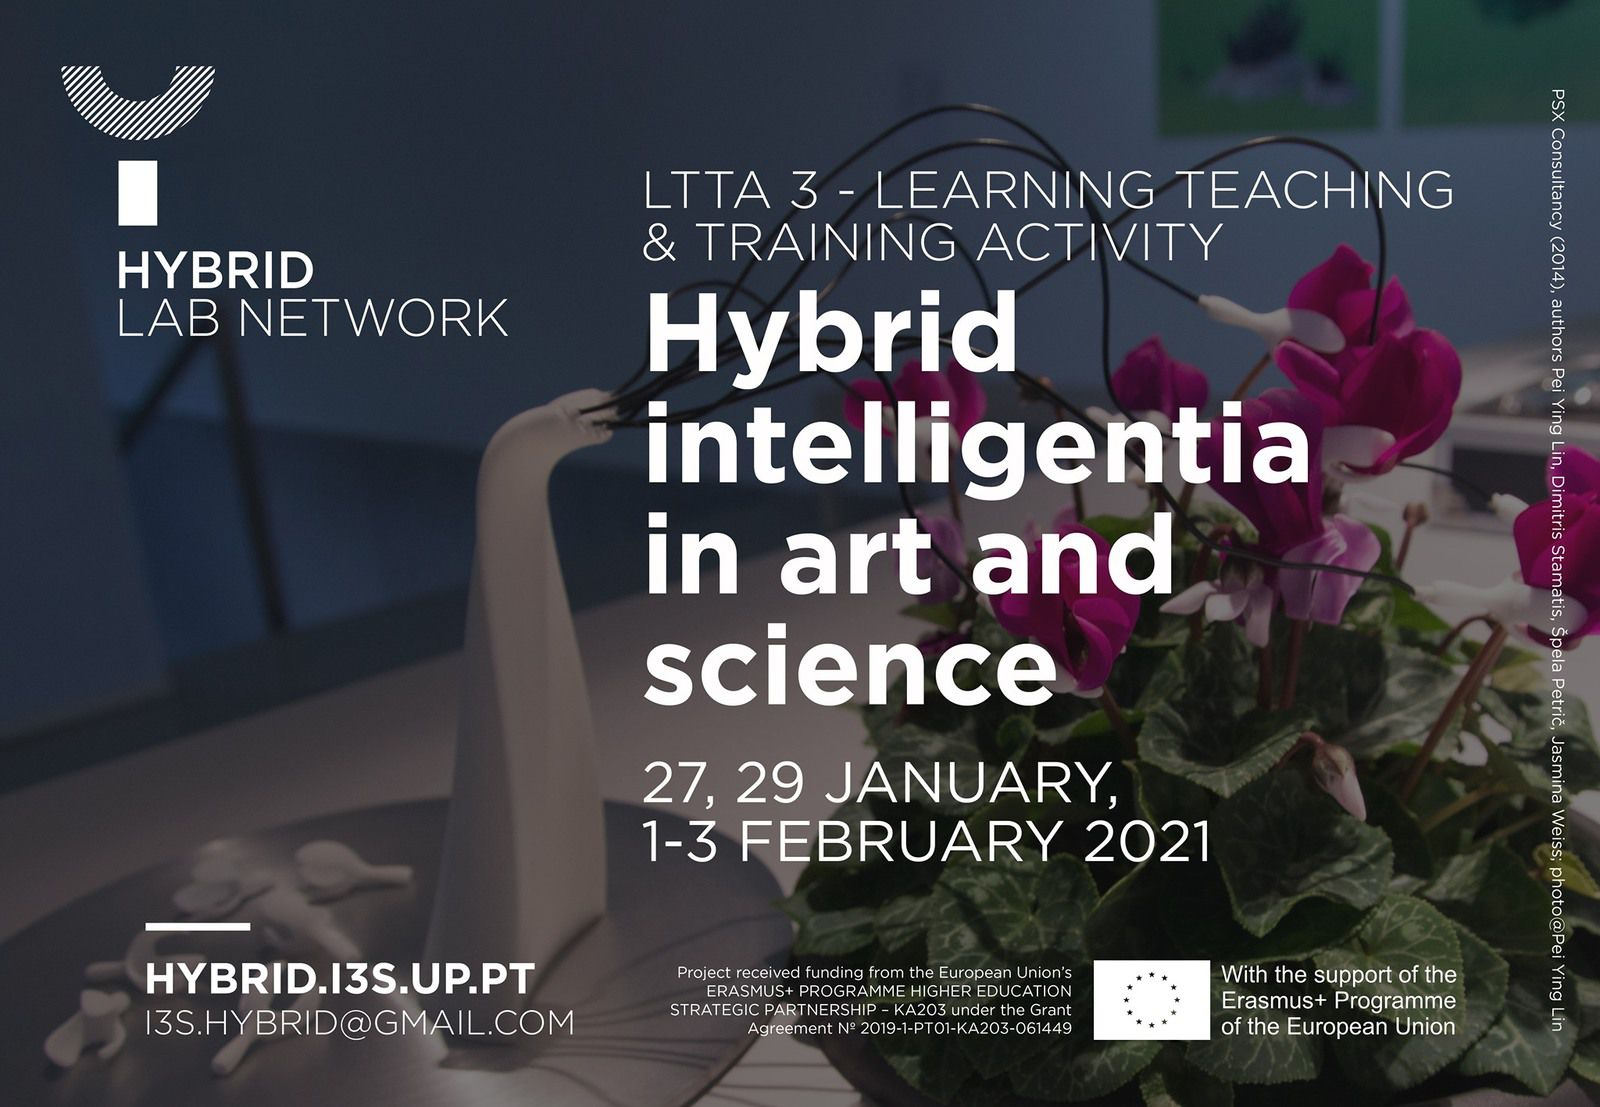 L'intelligence hybride dans l'art et la science